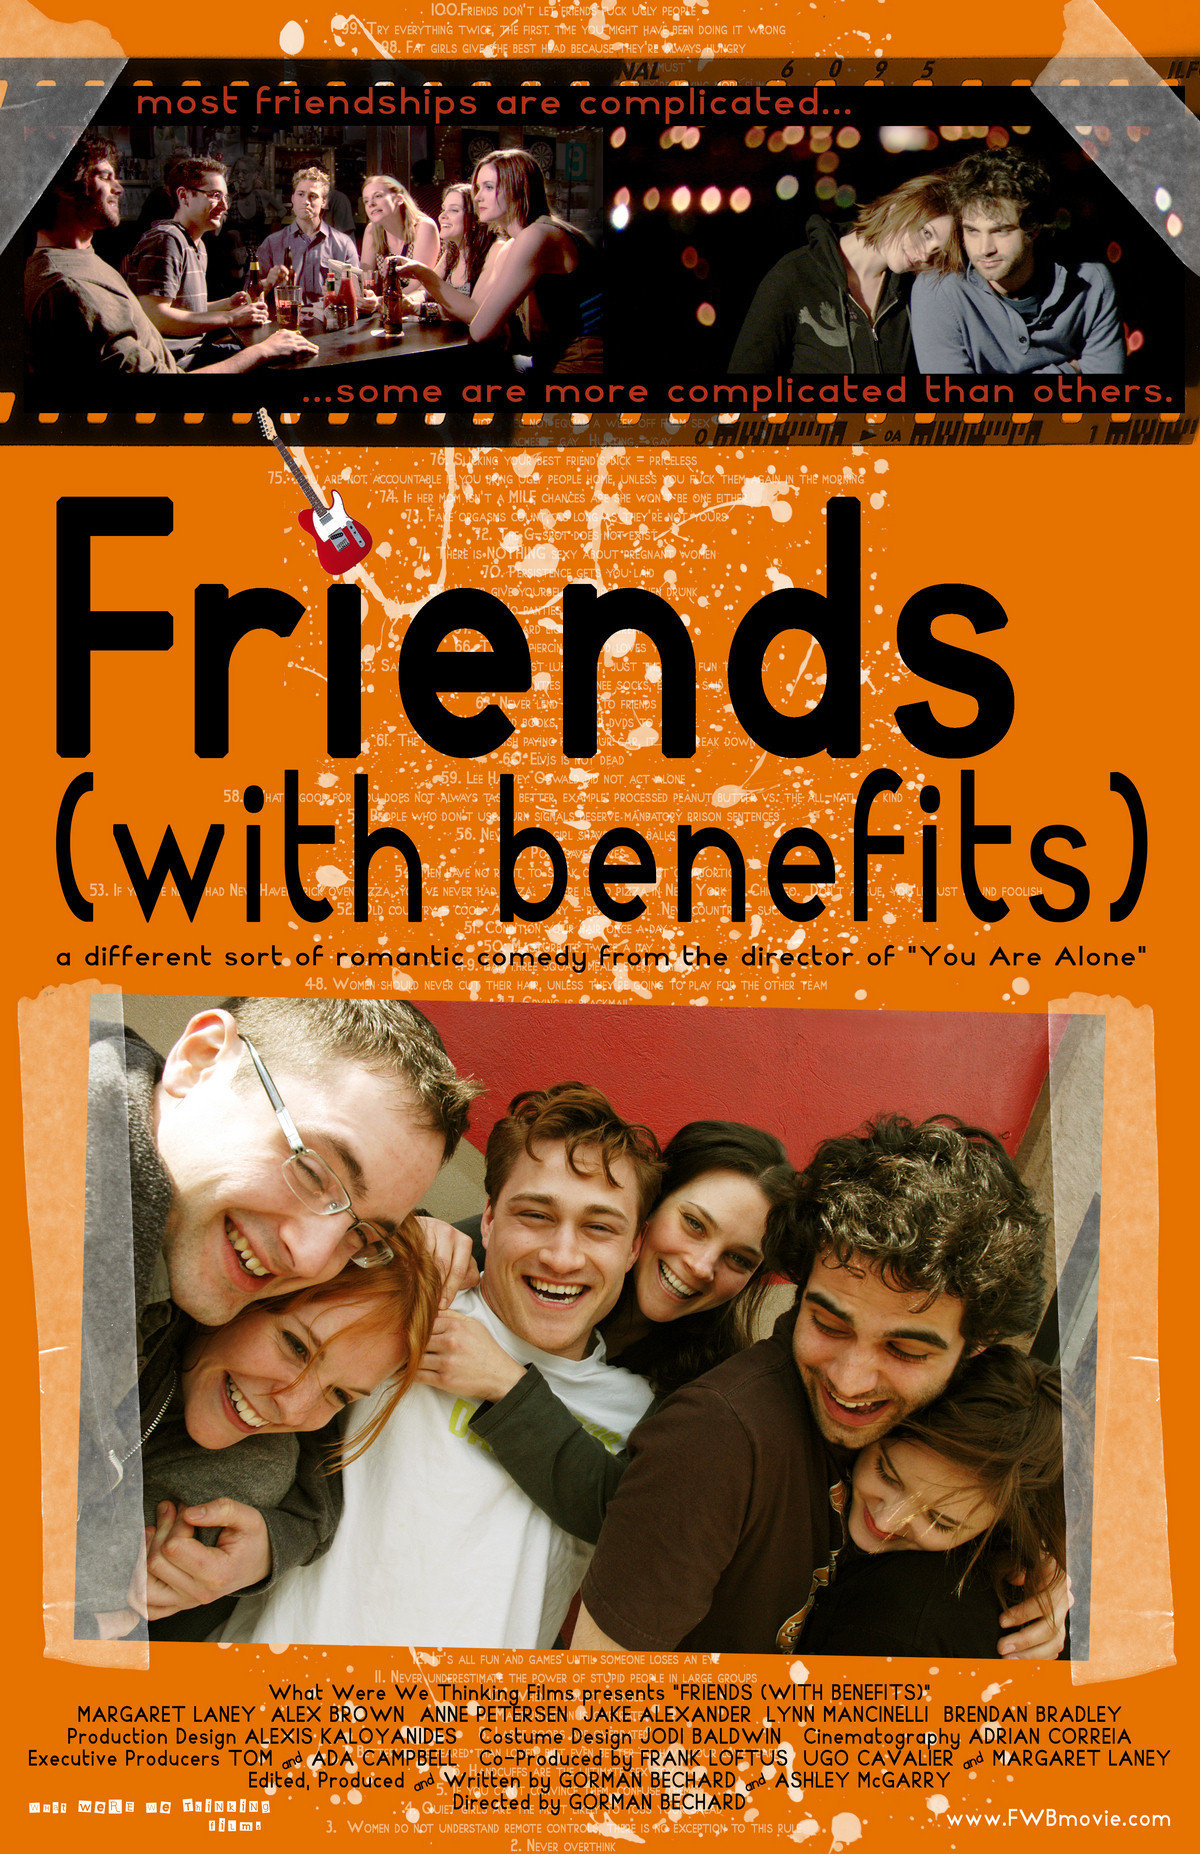 From friends to friends with benefits